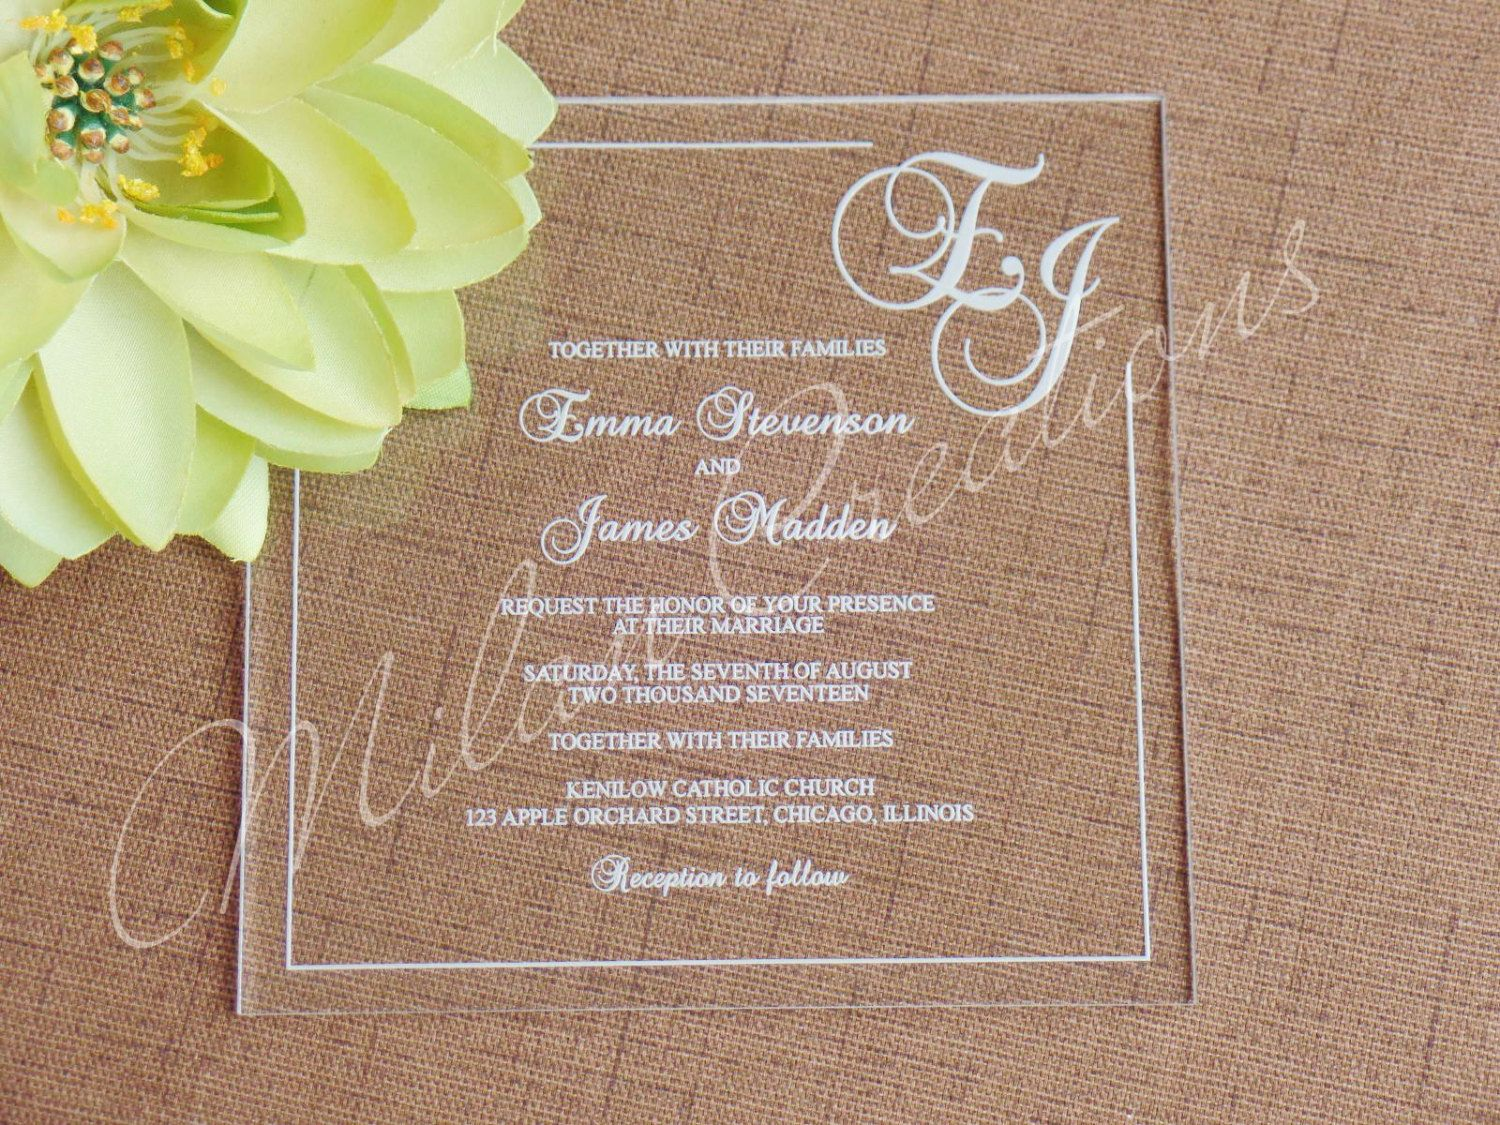 Acrylic wedding invitations in clear engraved plexiglass 5x7 acrylic wedding invitations in clear engraved plexiglass 5x7 stopboris Choice Image